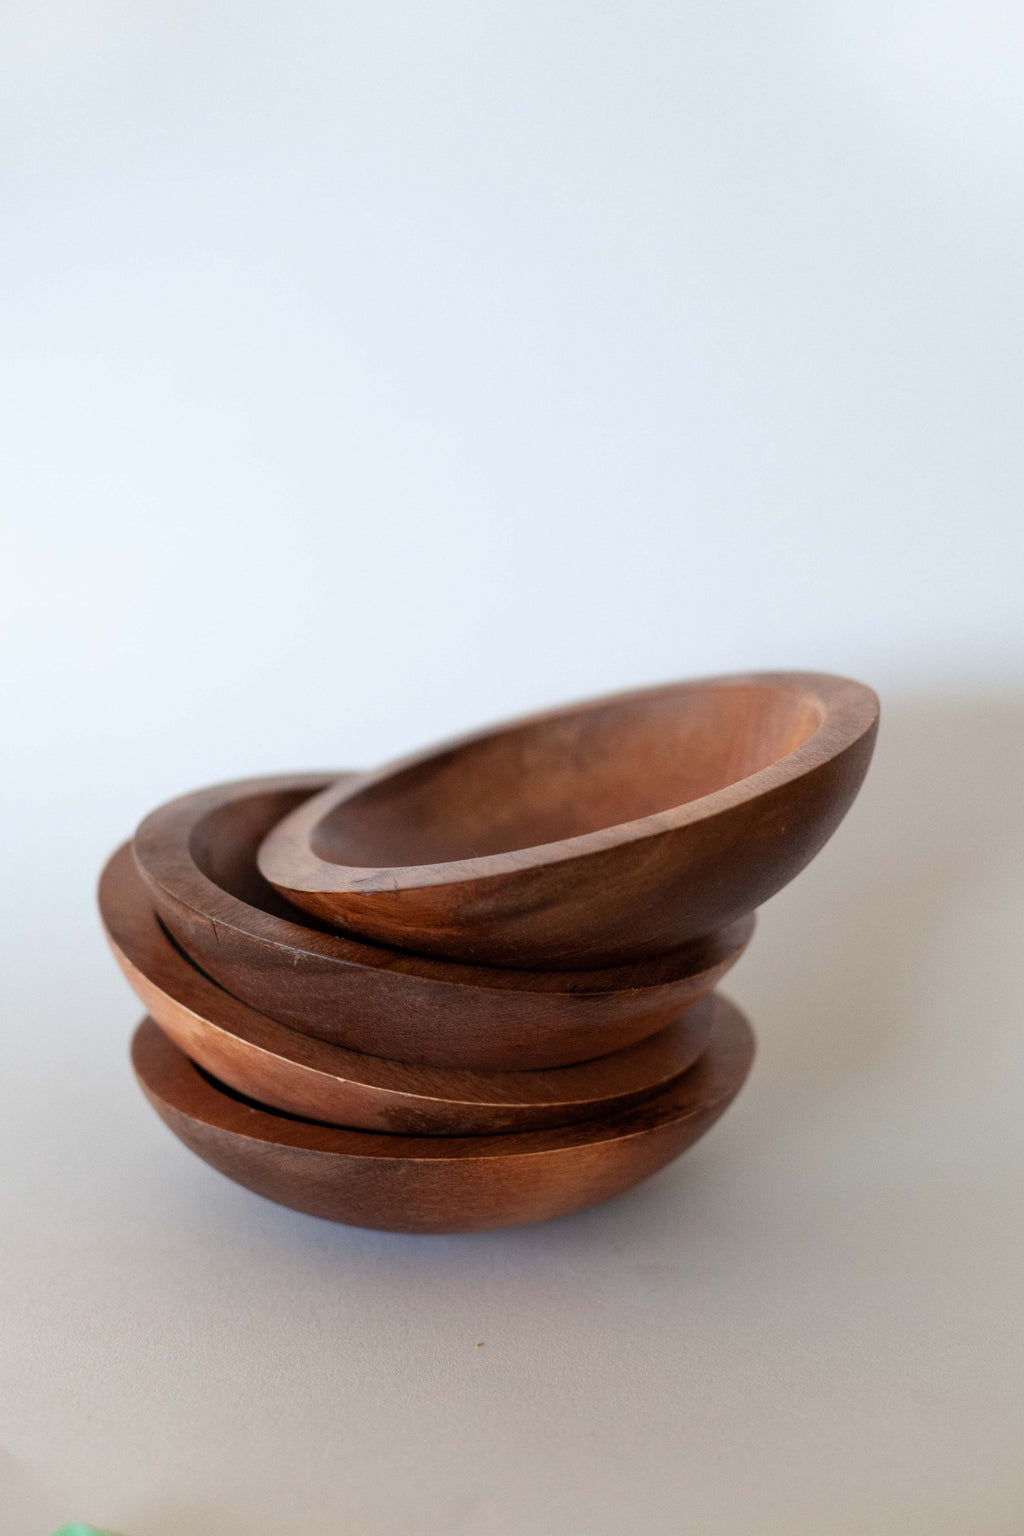 Set of 4 Baribocraft Wood Bowls - Fallow Home.